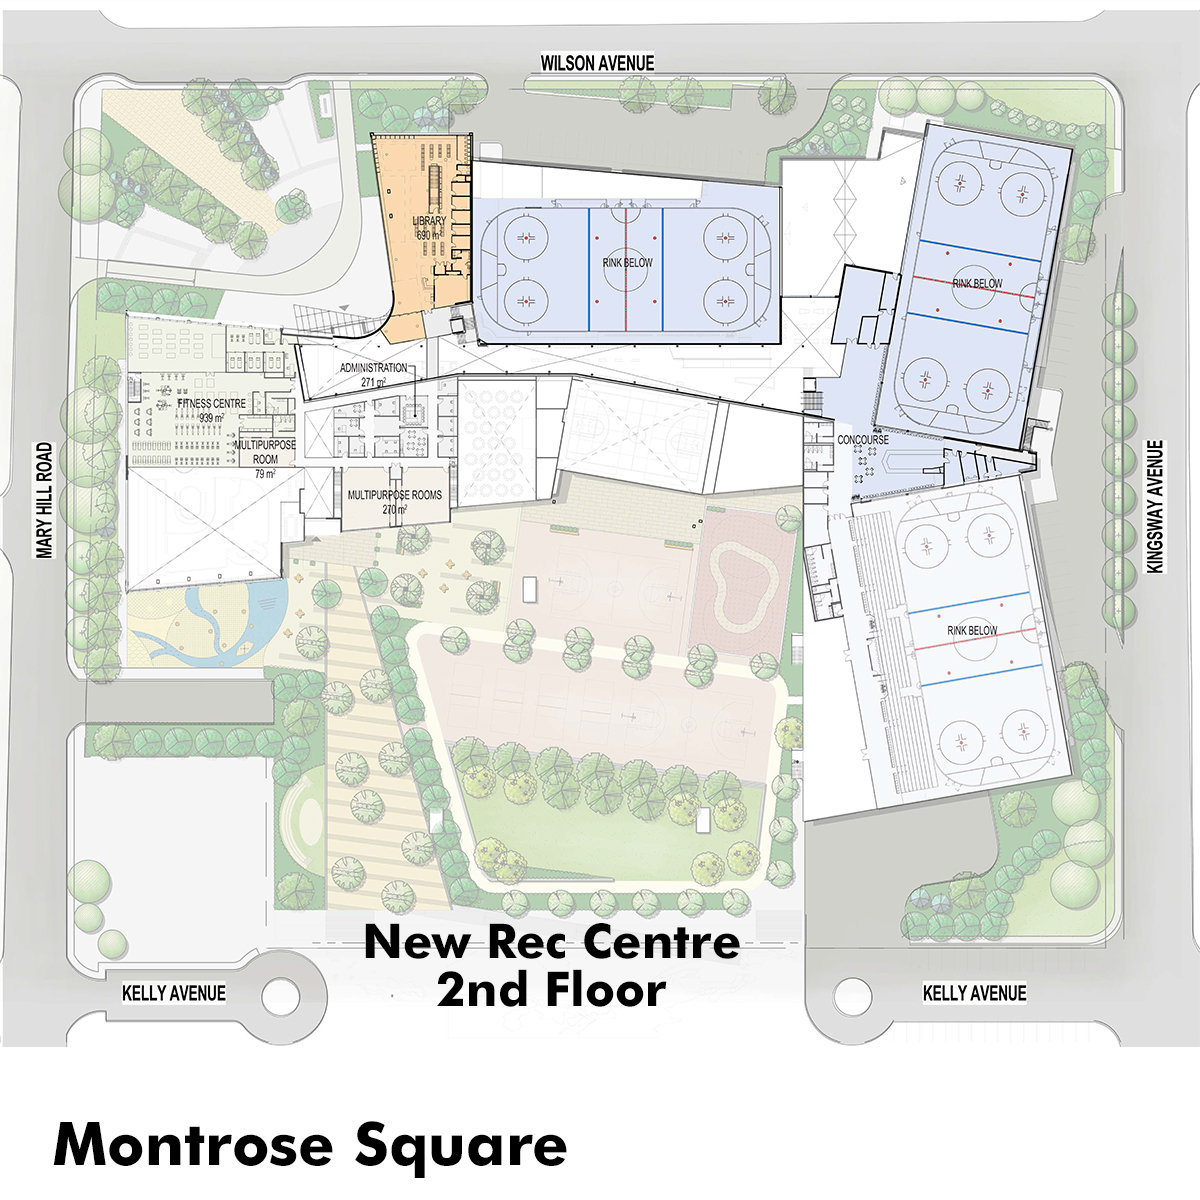 Proposed New Rec Centre And Monrose Square!